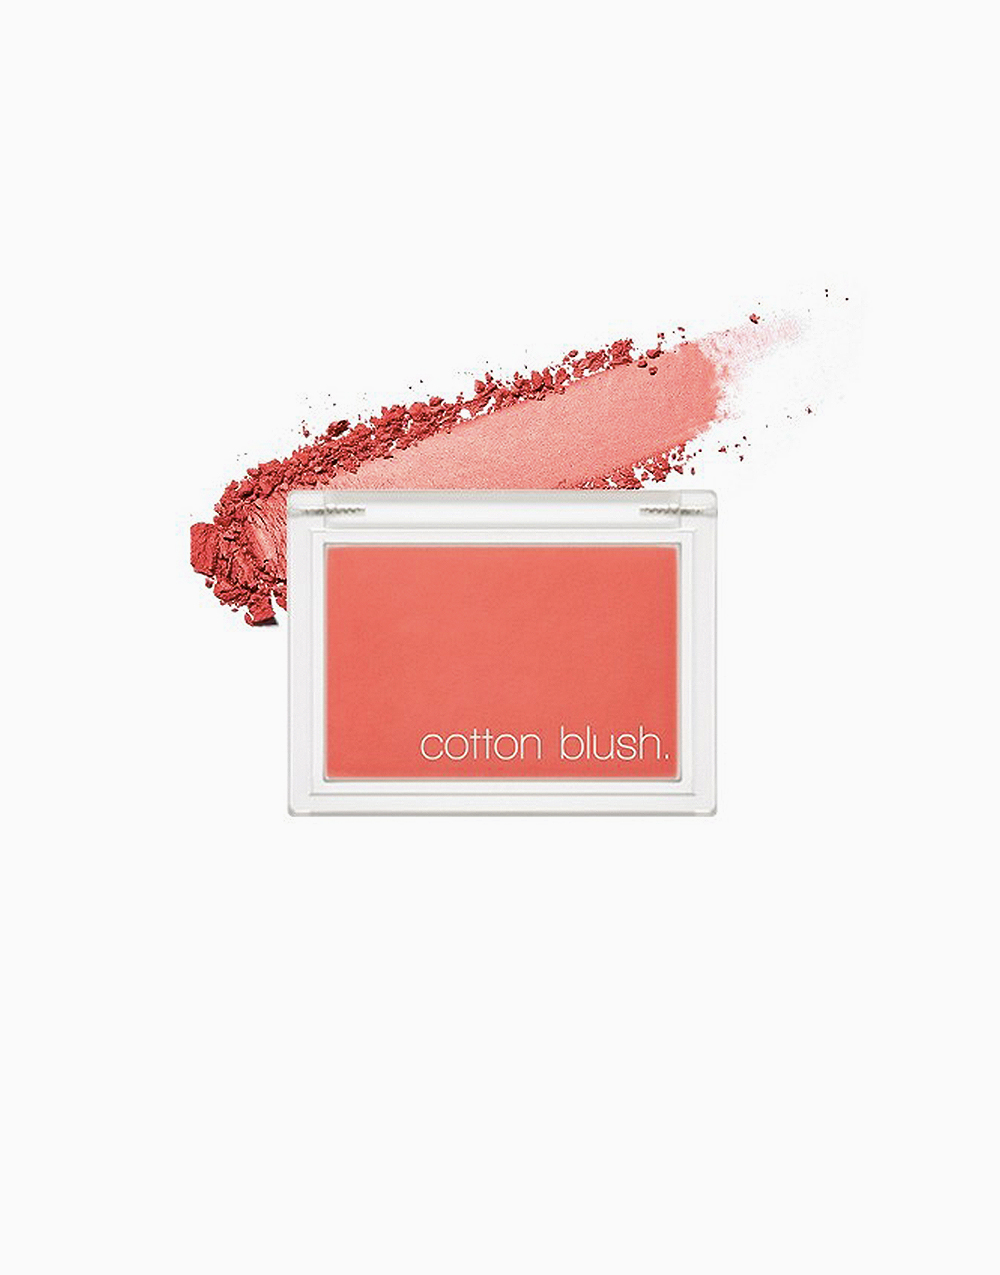 Cotton Blush by Missha | Sunny Afternoon